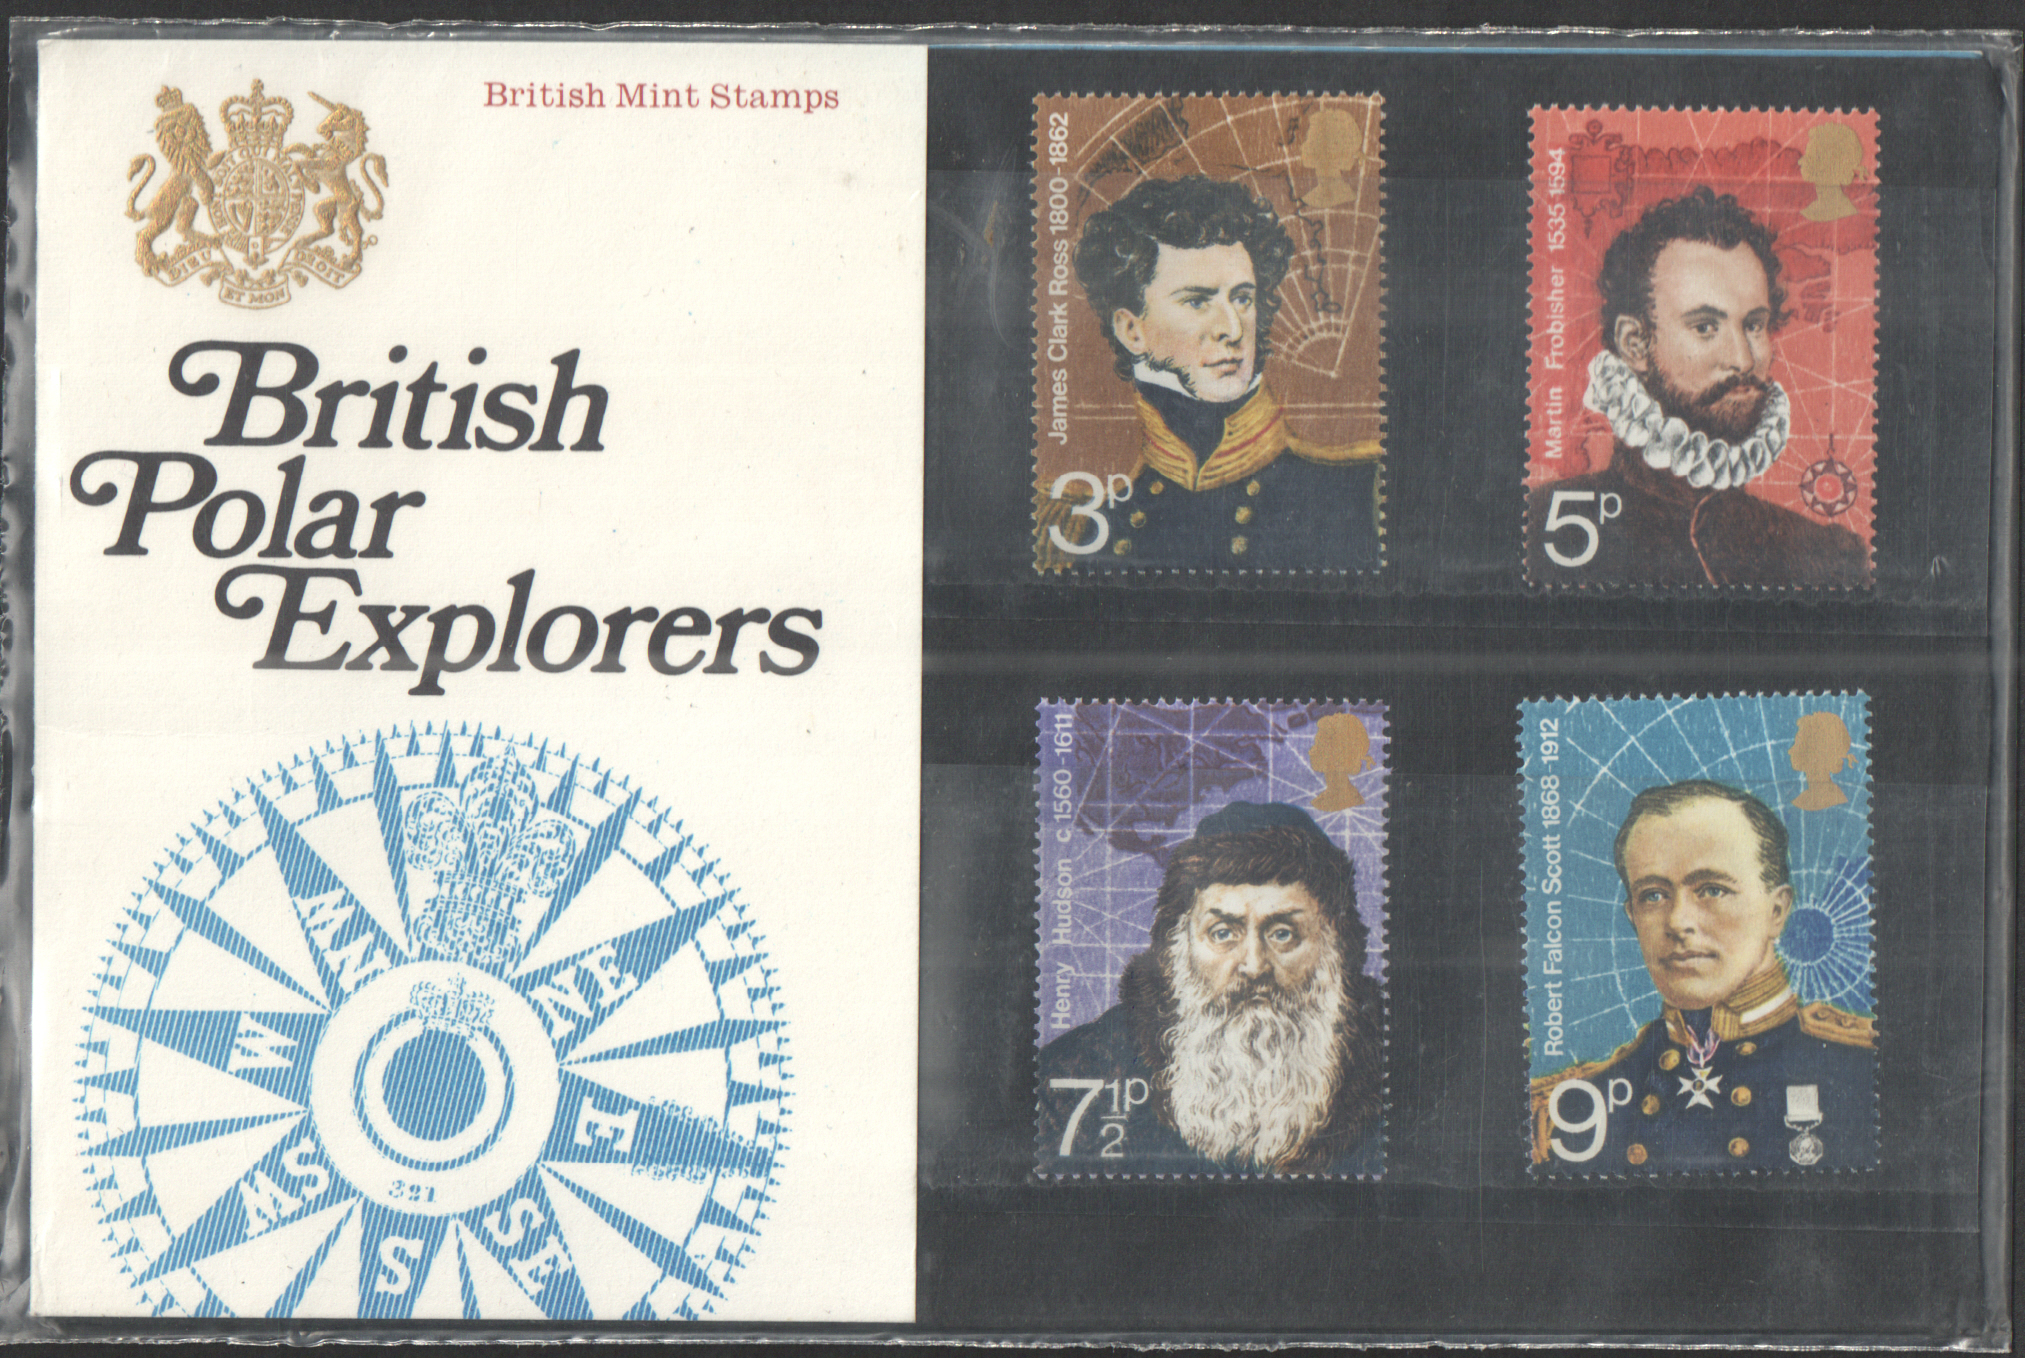 1972 Polar Explorers Type C - Decorative Crown, Flower Visible Royal Mail Presentation Pack 39